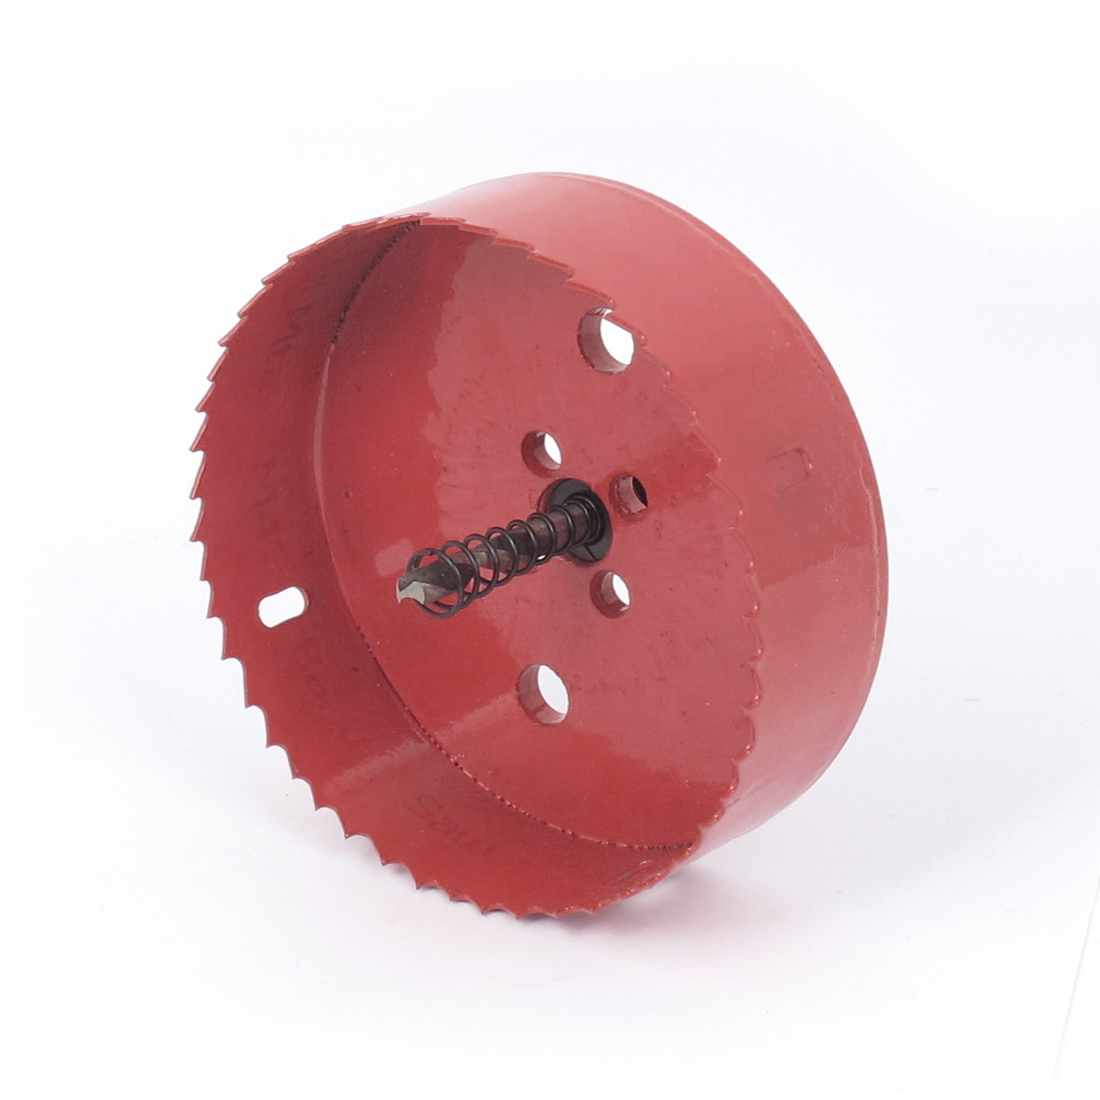 6mm Drill Bit 115mm Cutting Diameter Hole Saw Red for Drilling Wood